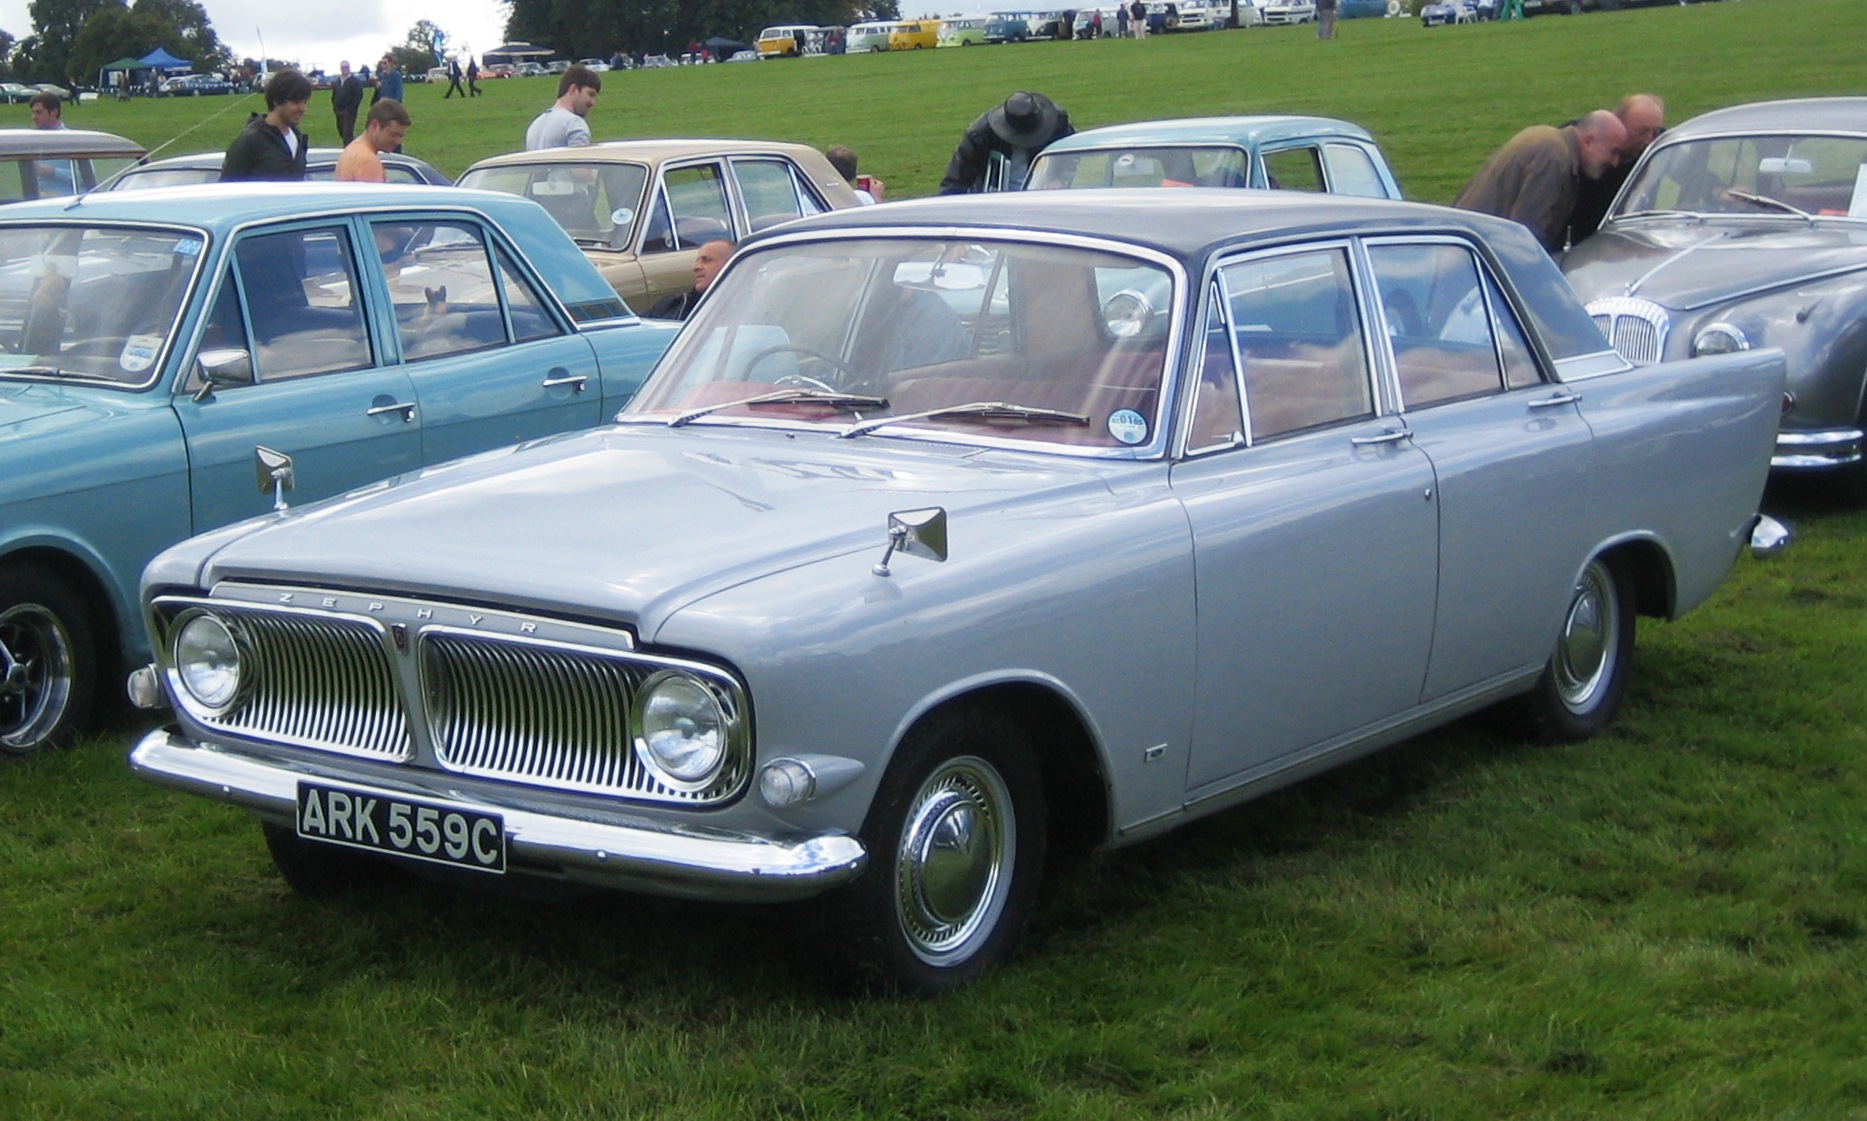 file ford zephyr 6 license plate wikipedia. Black Bedroom Furniture Sets. Home Design Ideas